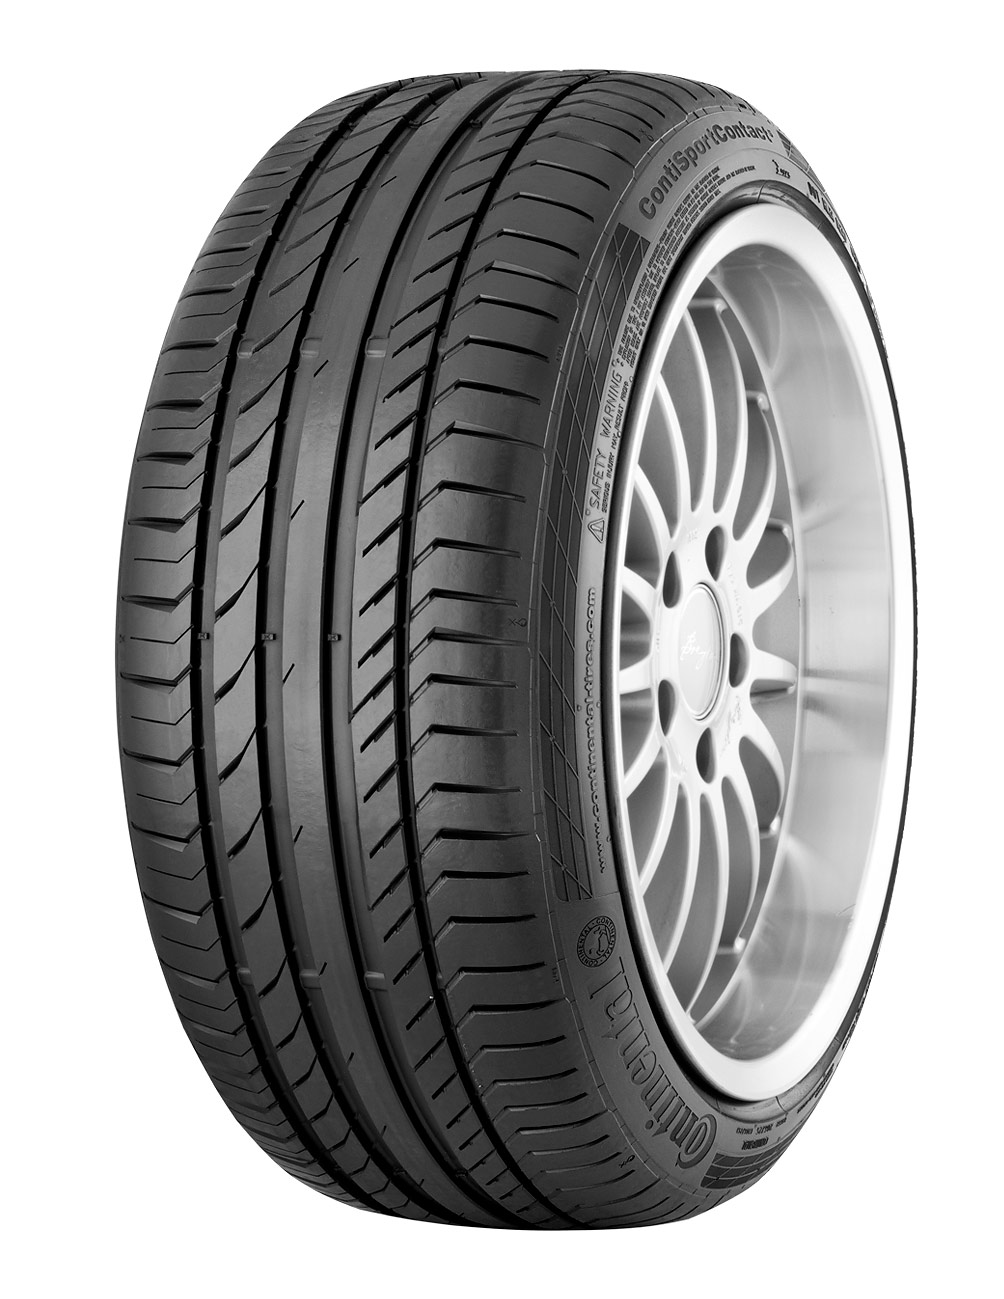 Gomme Nuove Continental 245/40 R17 91Y SP.CONTACT 5 MO pneumatici nuovi Estivo